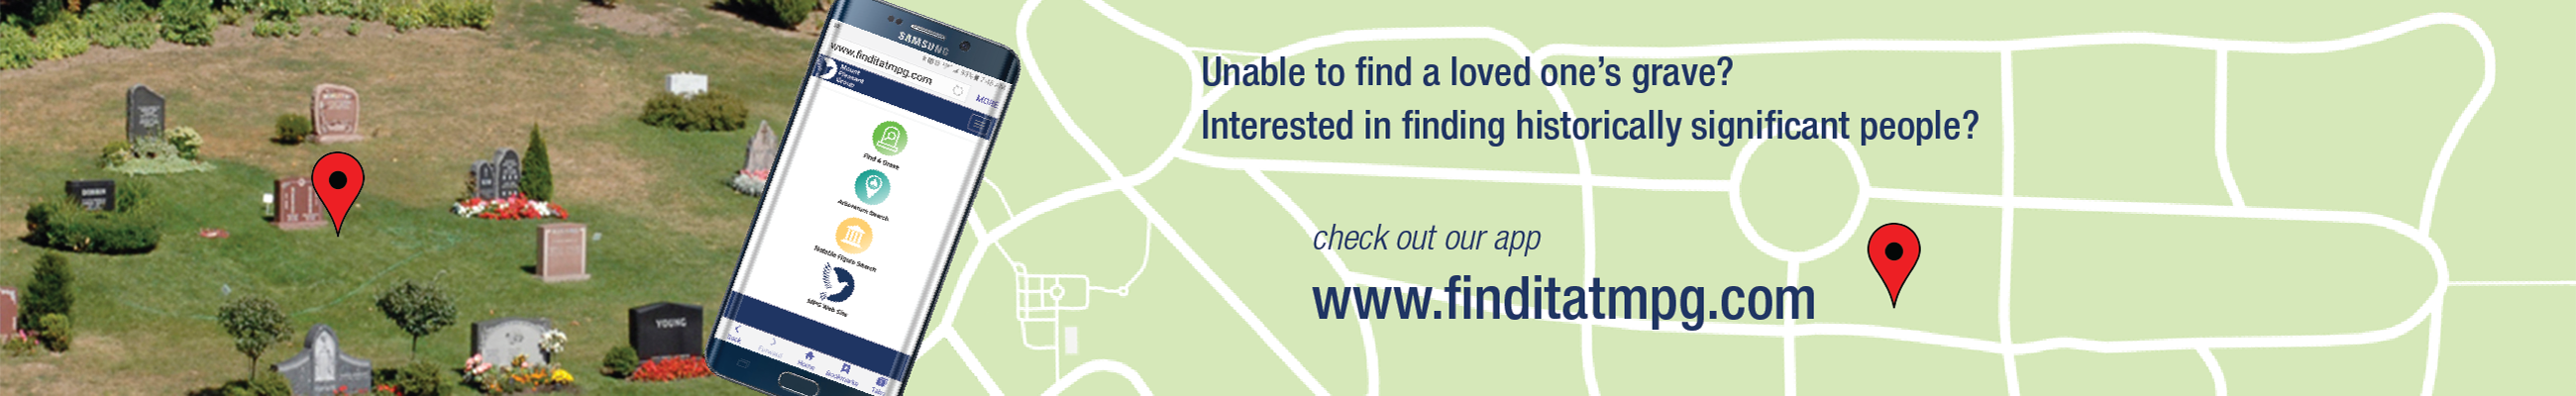 Unable to find a loved one's grave? Interested in findig historically significant people? Check out our app: www.finditatmpg.com.